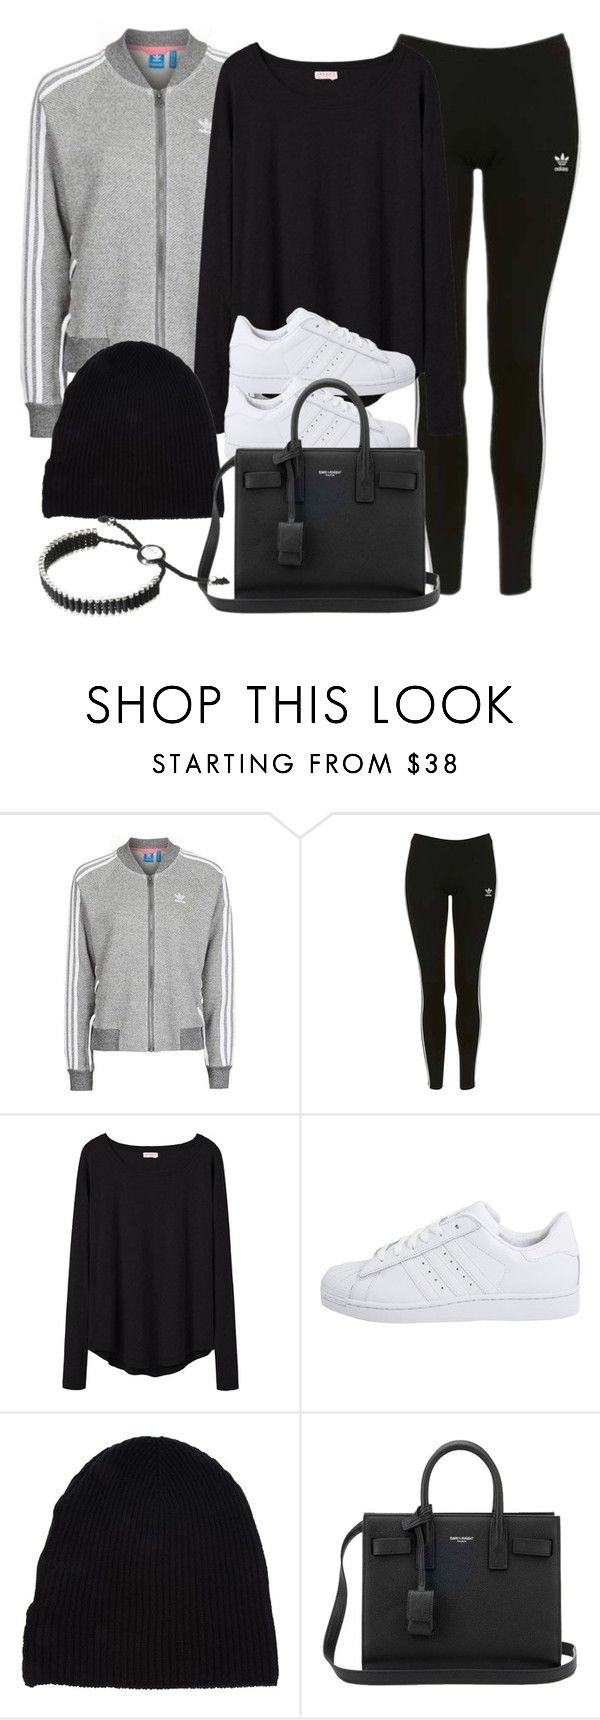 """Style #11618"" by vany-alvarado ❤ liked on Polyvore featuring Topshop, Organic by John Patrick, adidas Originals, Yves Saint Laurent and Links of London"